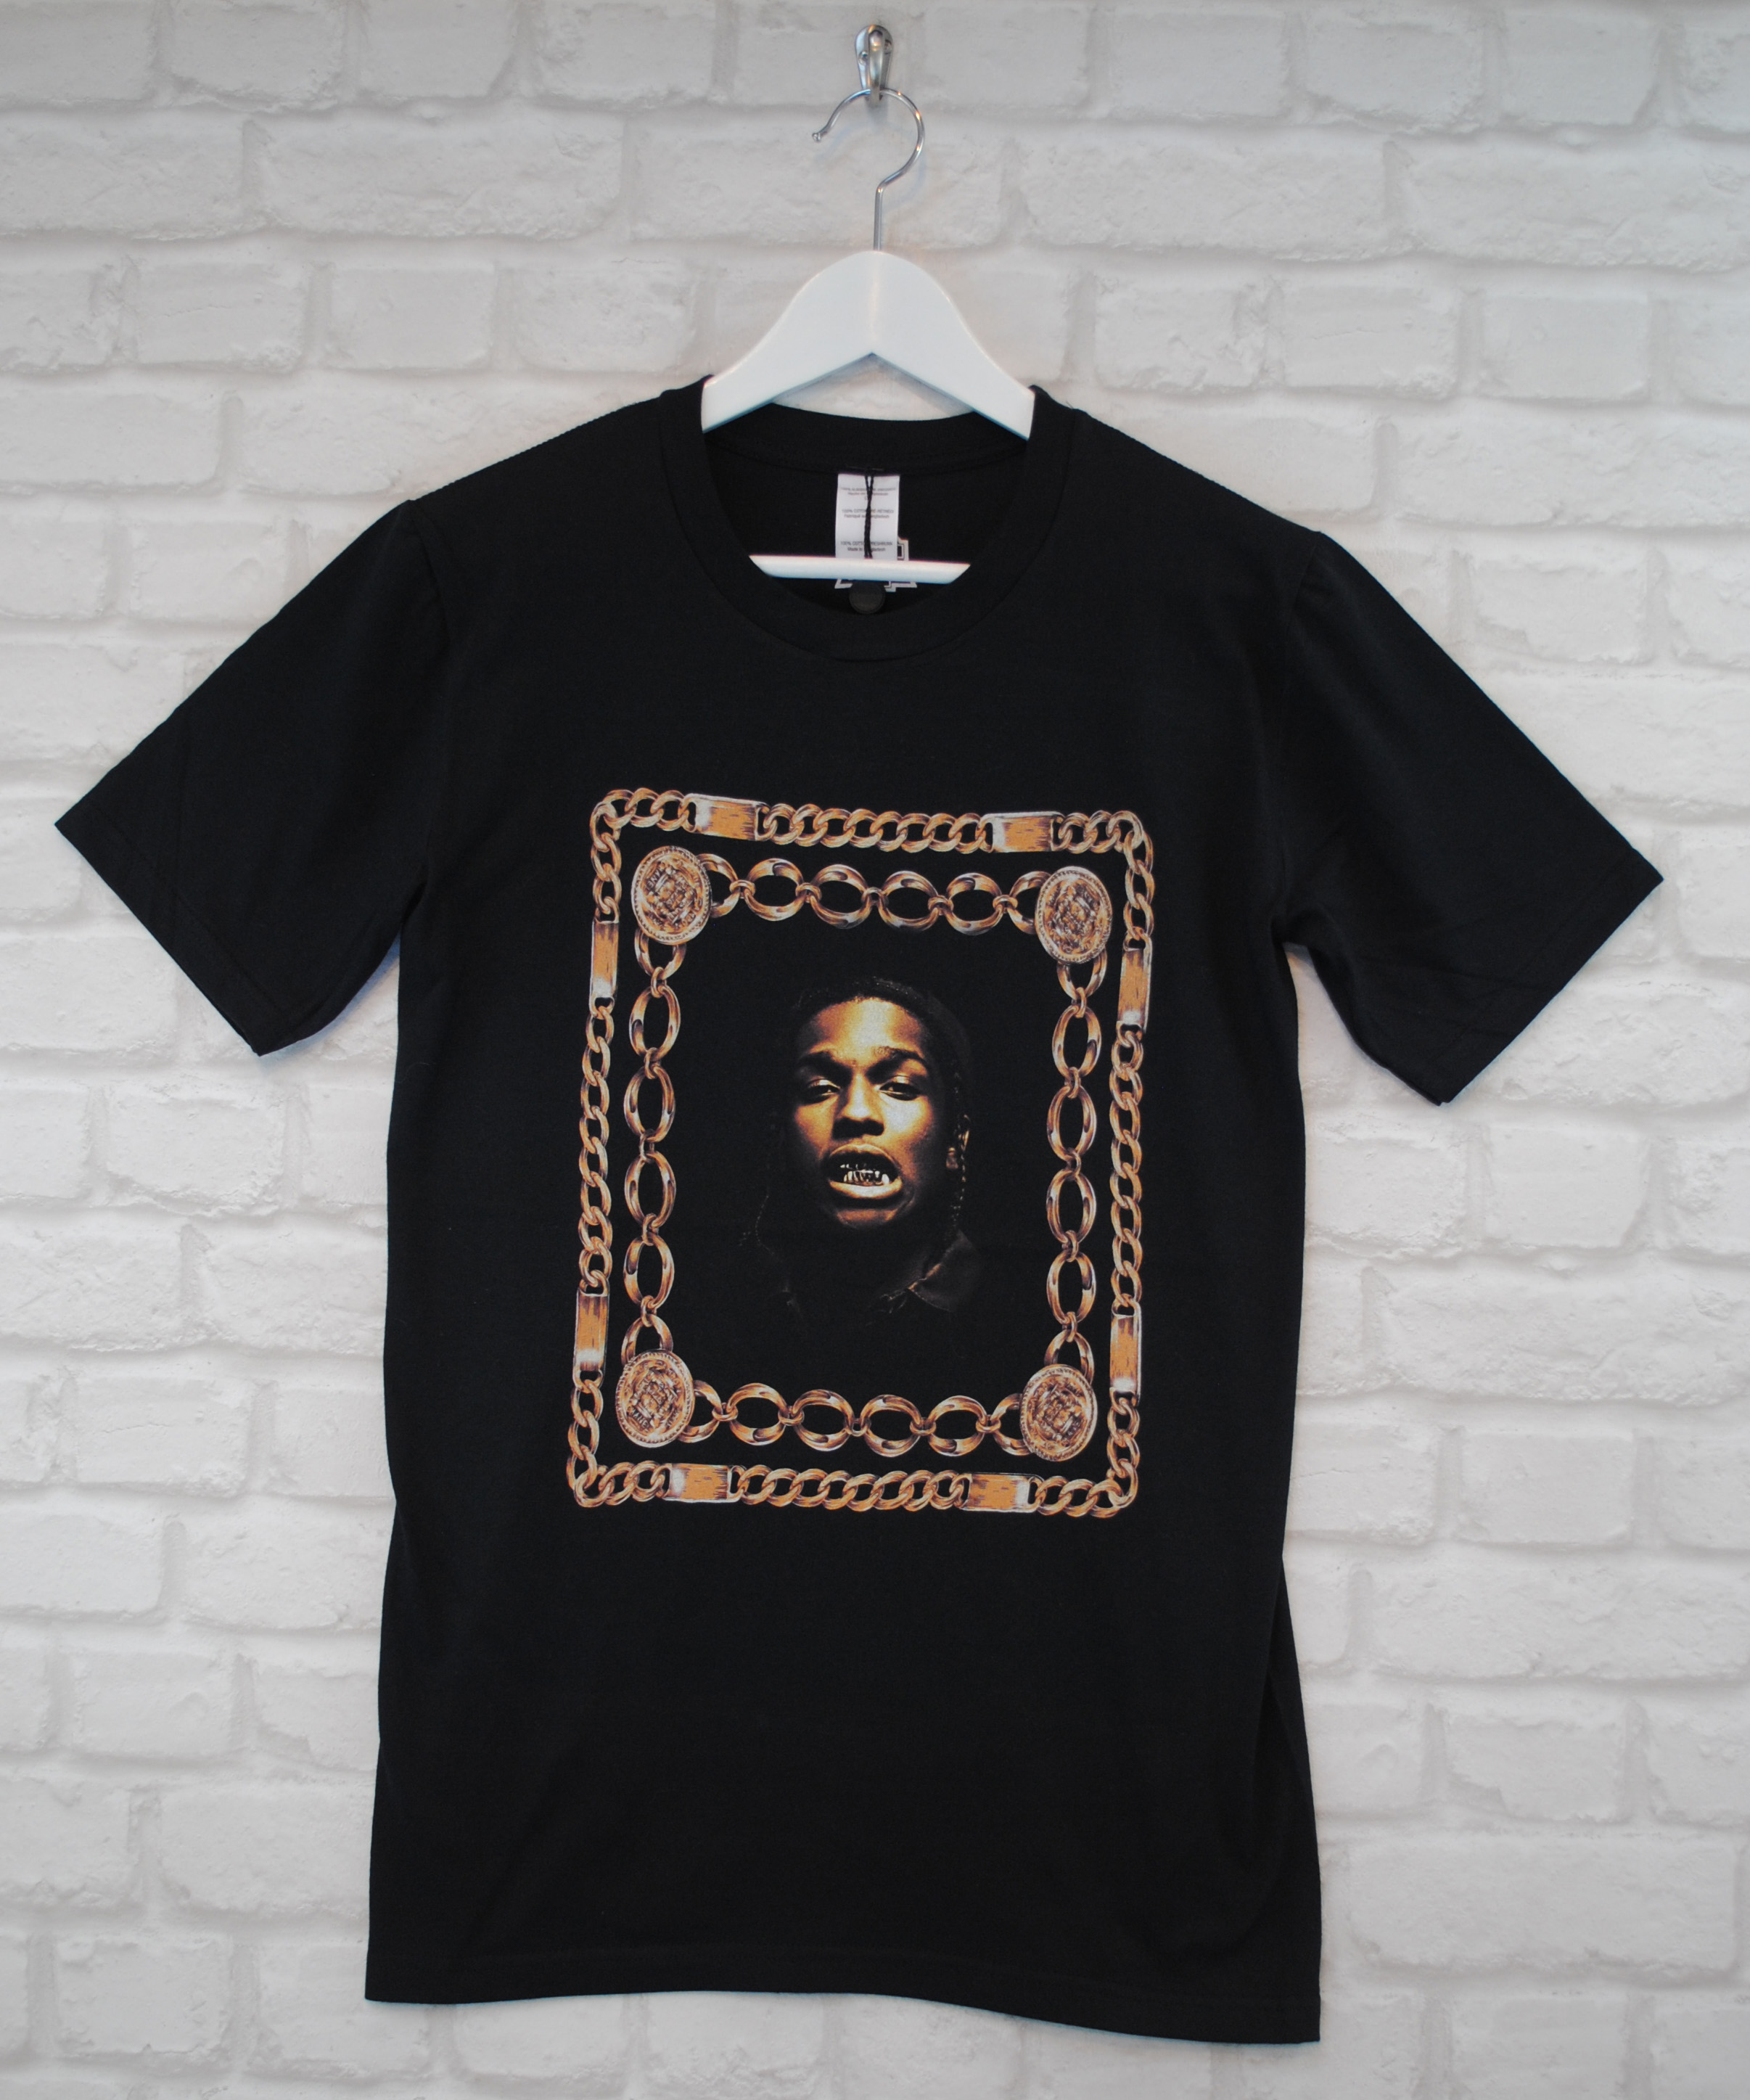 ASAP Rocky shirts come in a variety of styles, most often printed on black or white tees for a stark yet minimal look. These shirts may feature ASAP Rocky's logos, album art, or other images associated with the rapper, including photos or drawings.